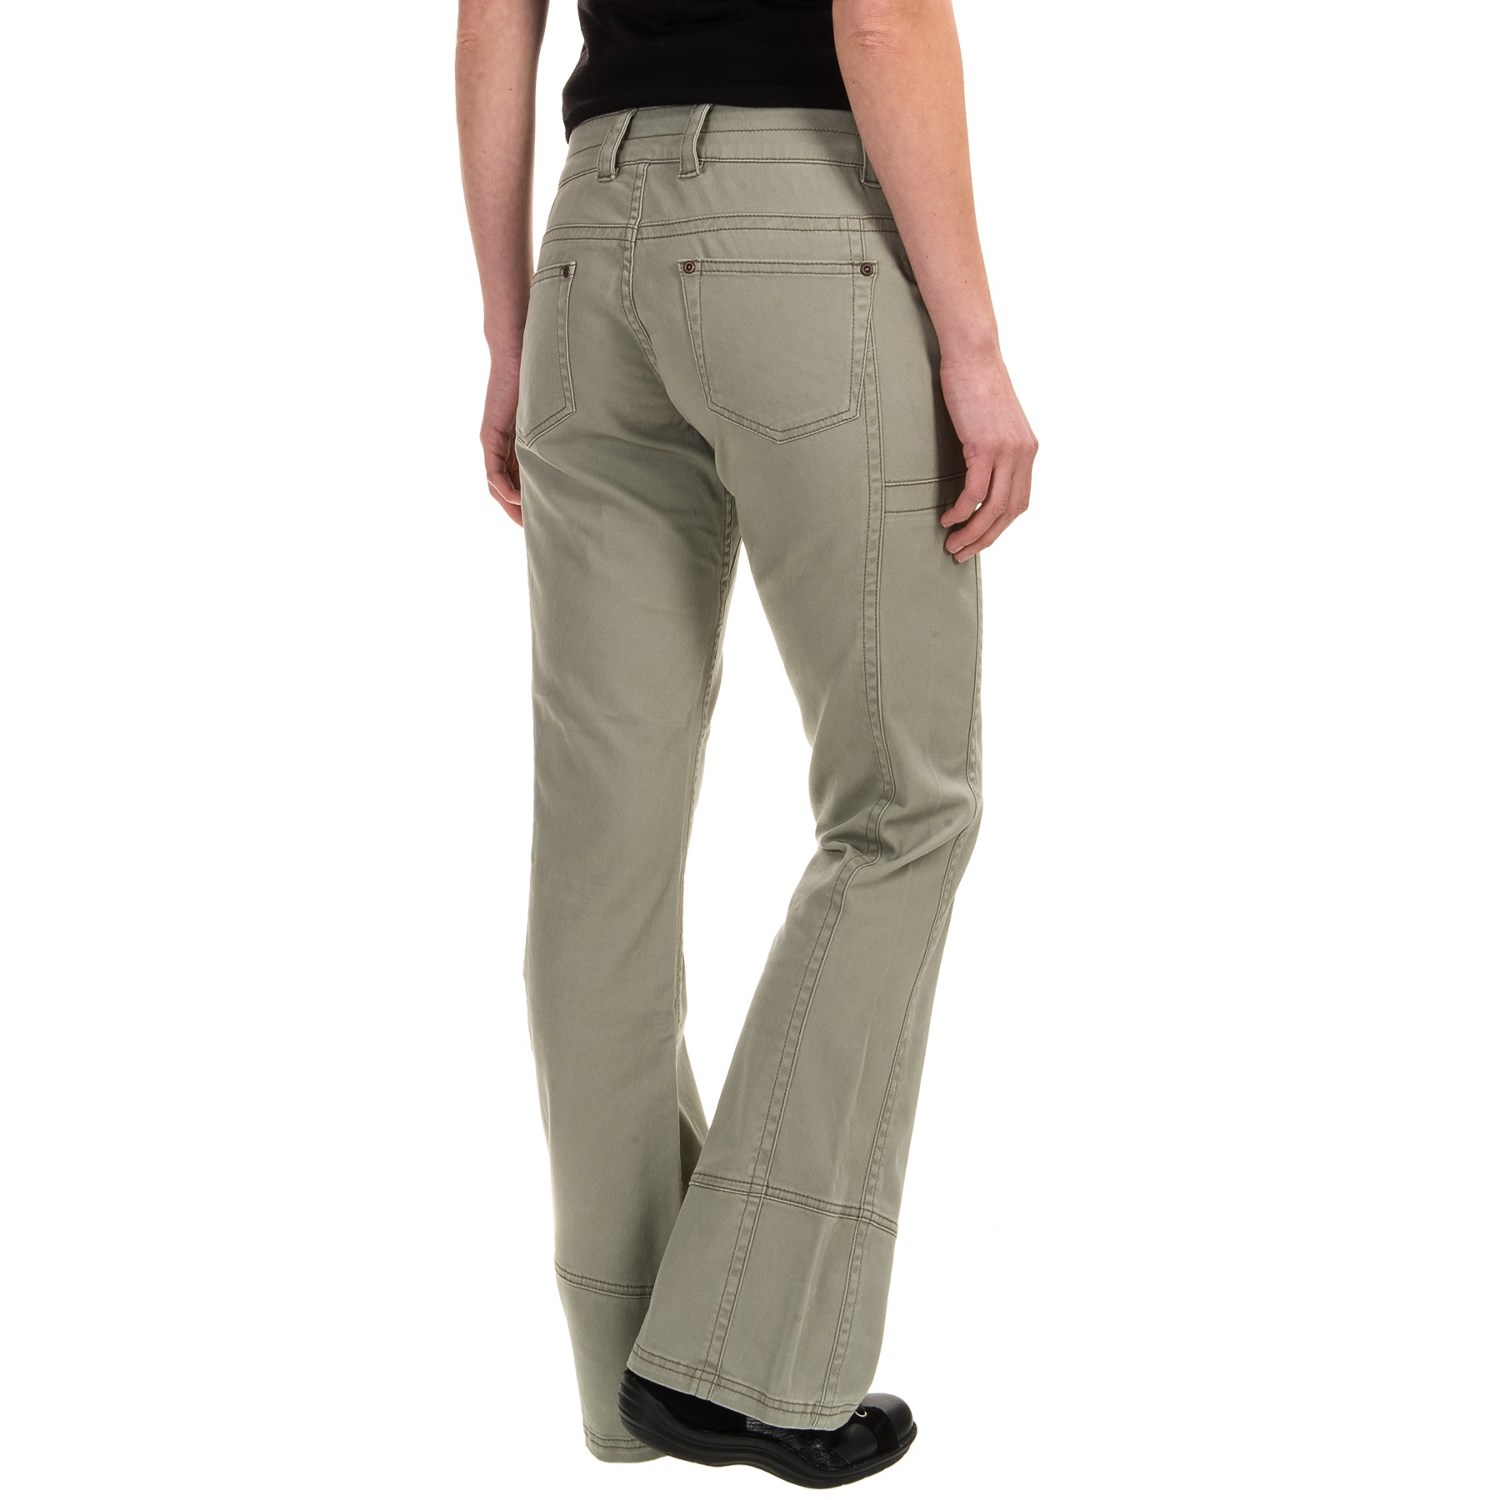 HyBrid & Company Women's Slim Boot Cut Stretch Pants Shop Best Sellers · Deals of the Day · Fast Shipping · Read Ratings & Reviews.